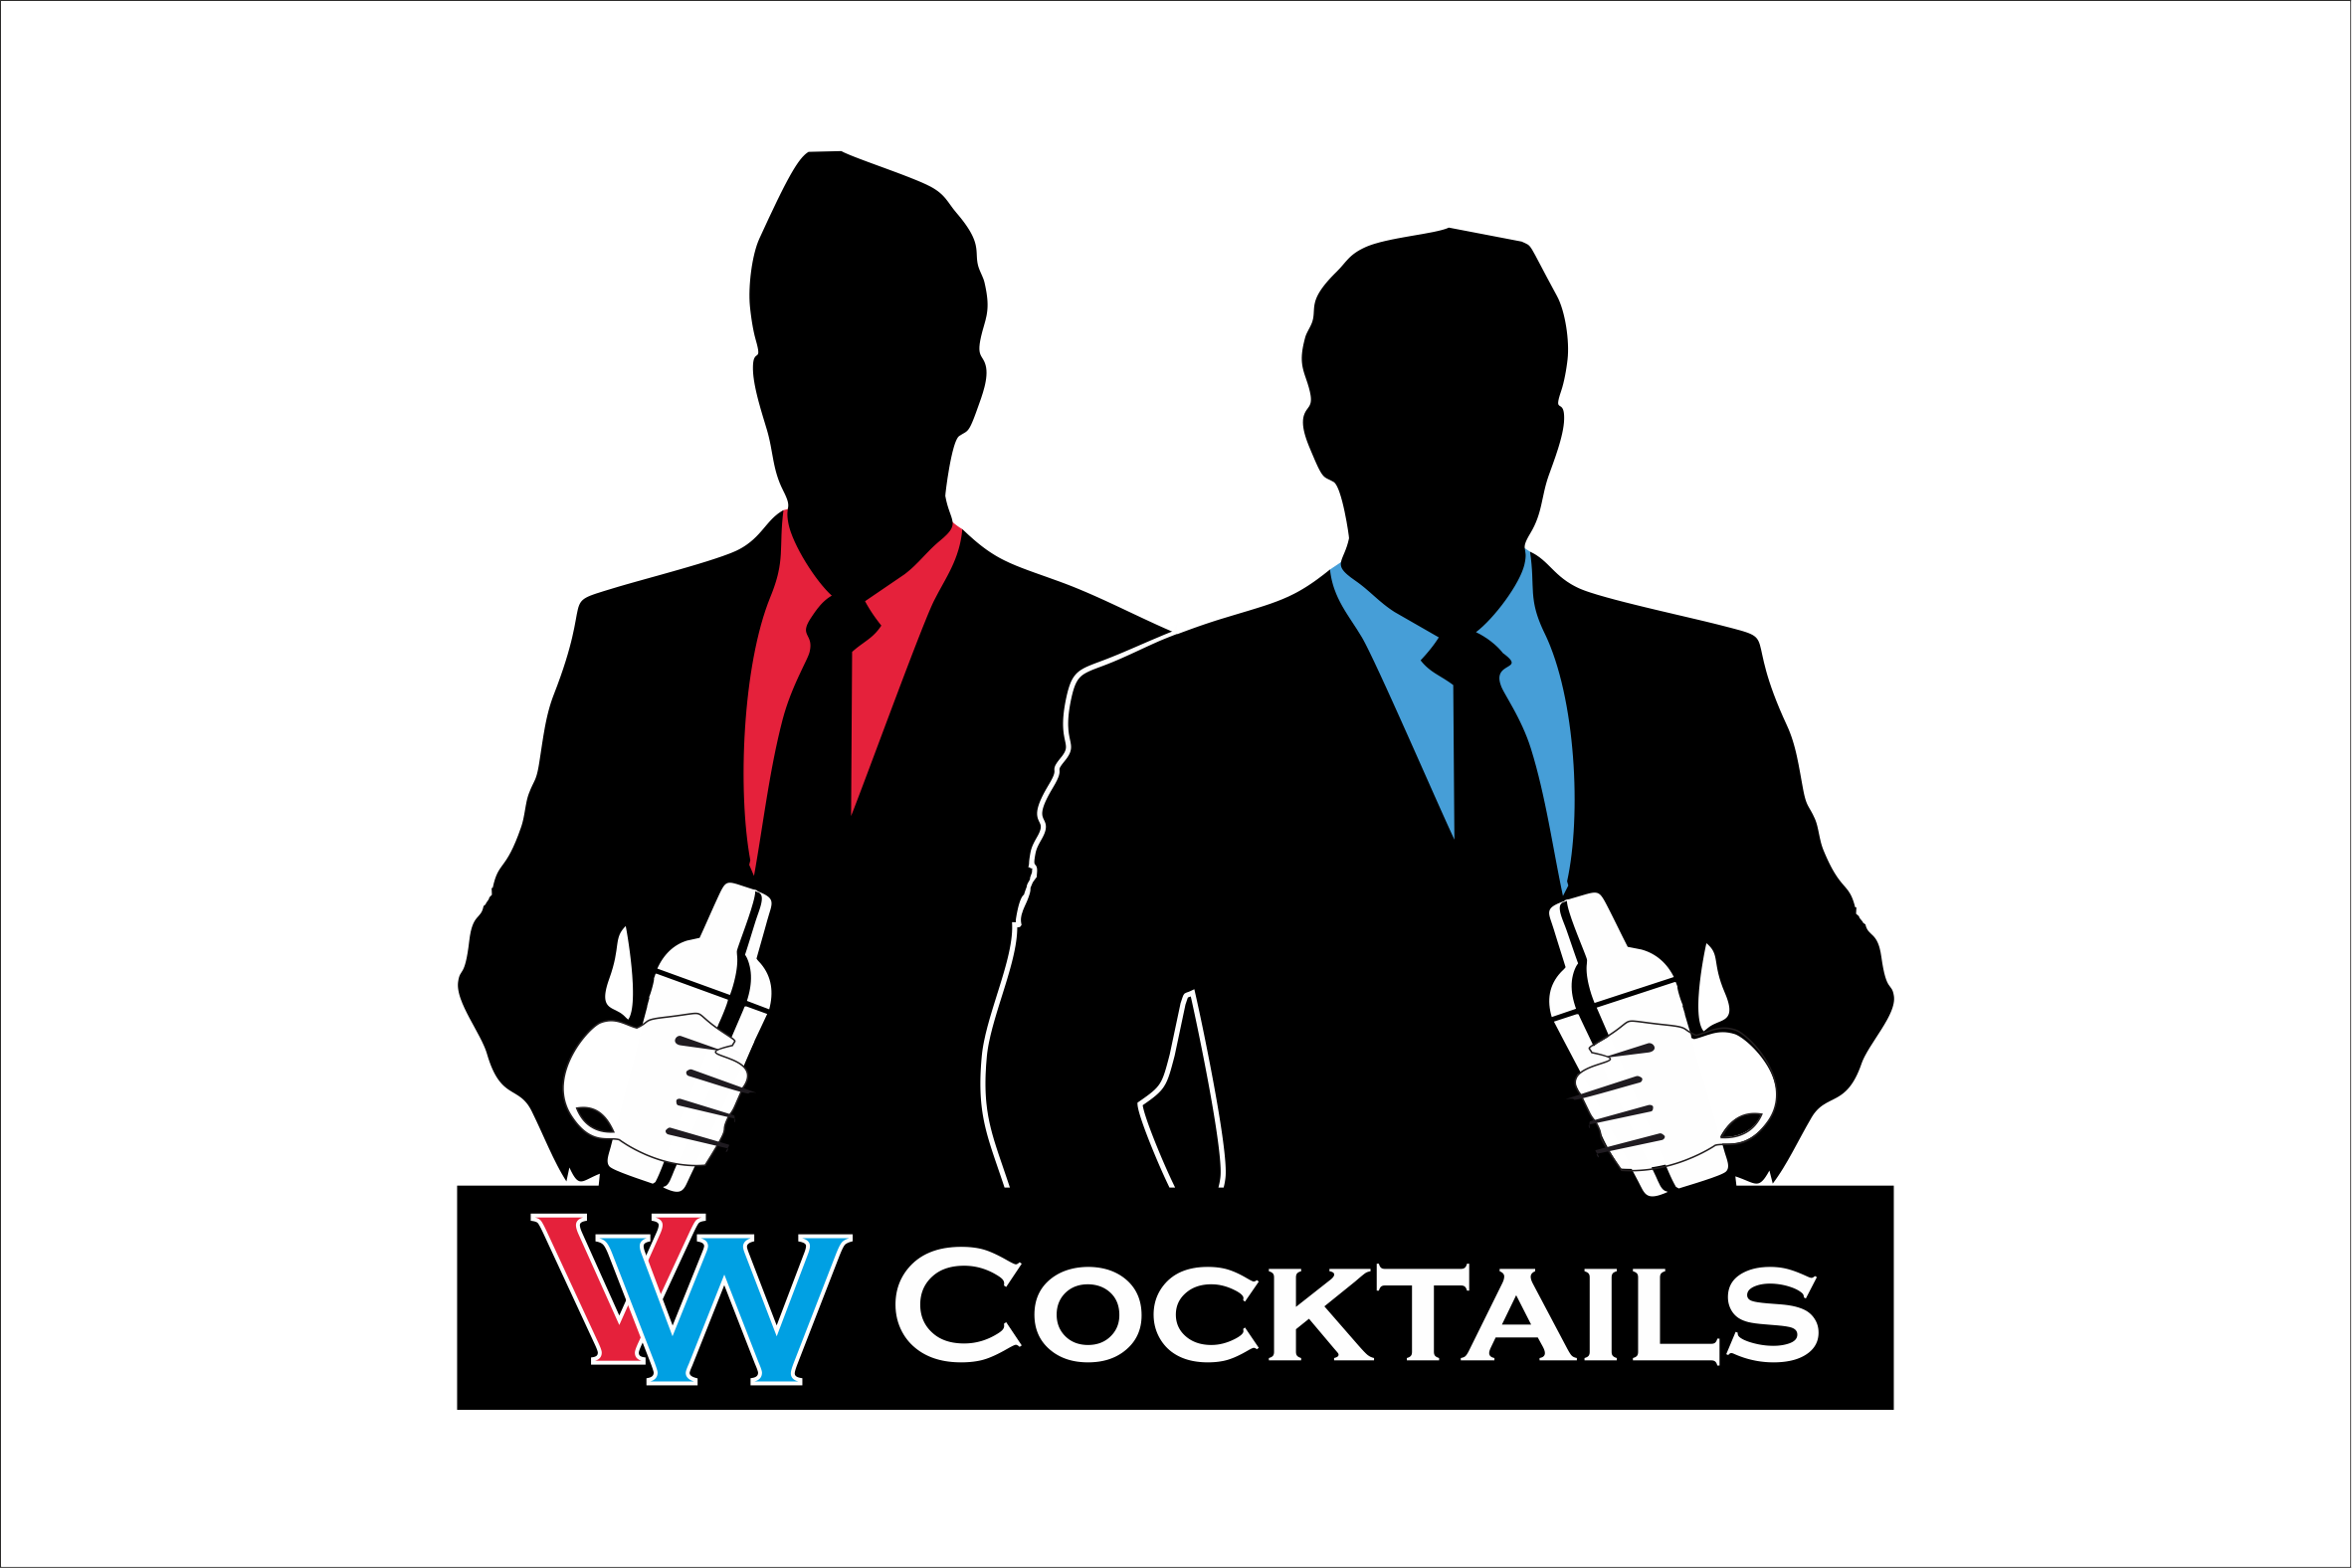 Logo-VW-Cocktails